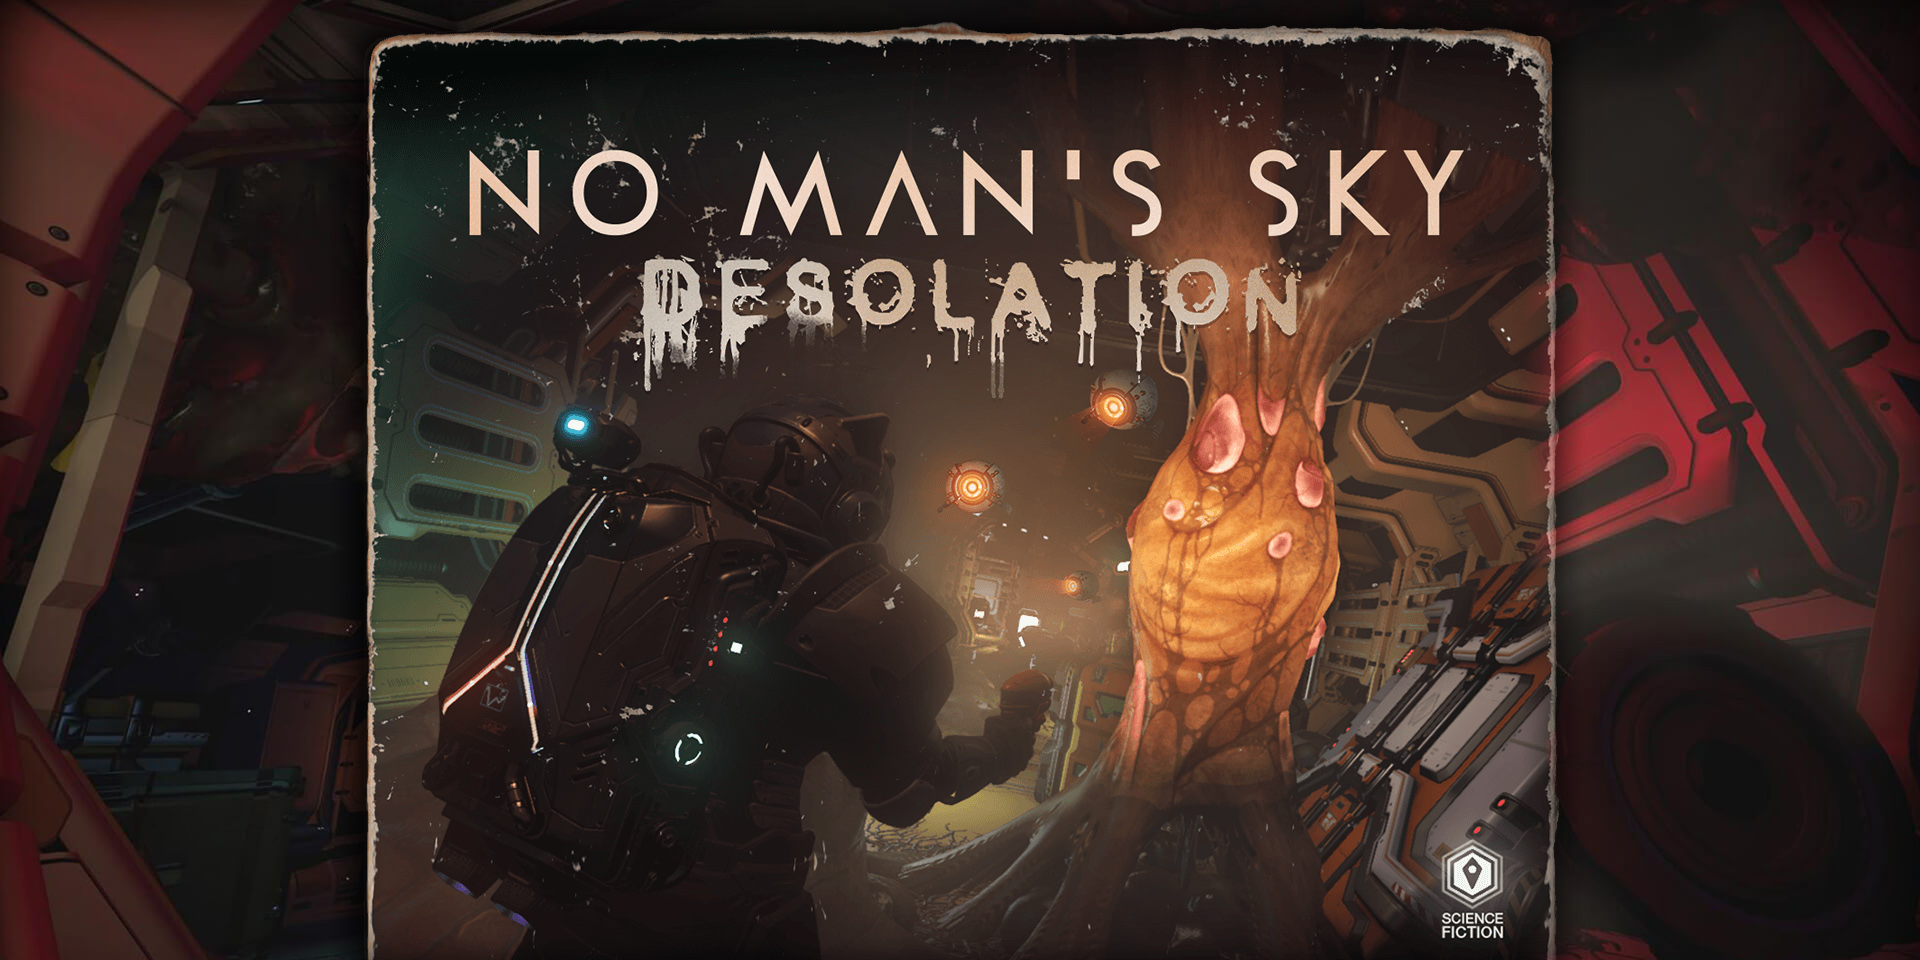 No Man's Sky: Desolation